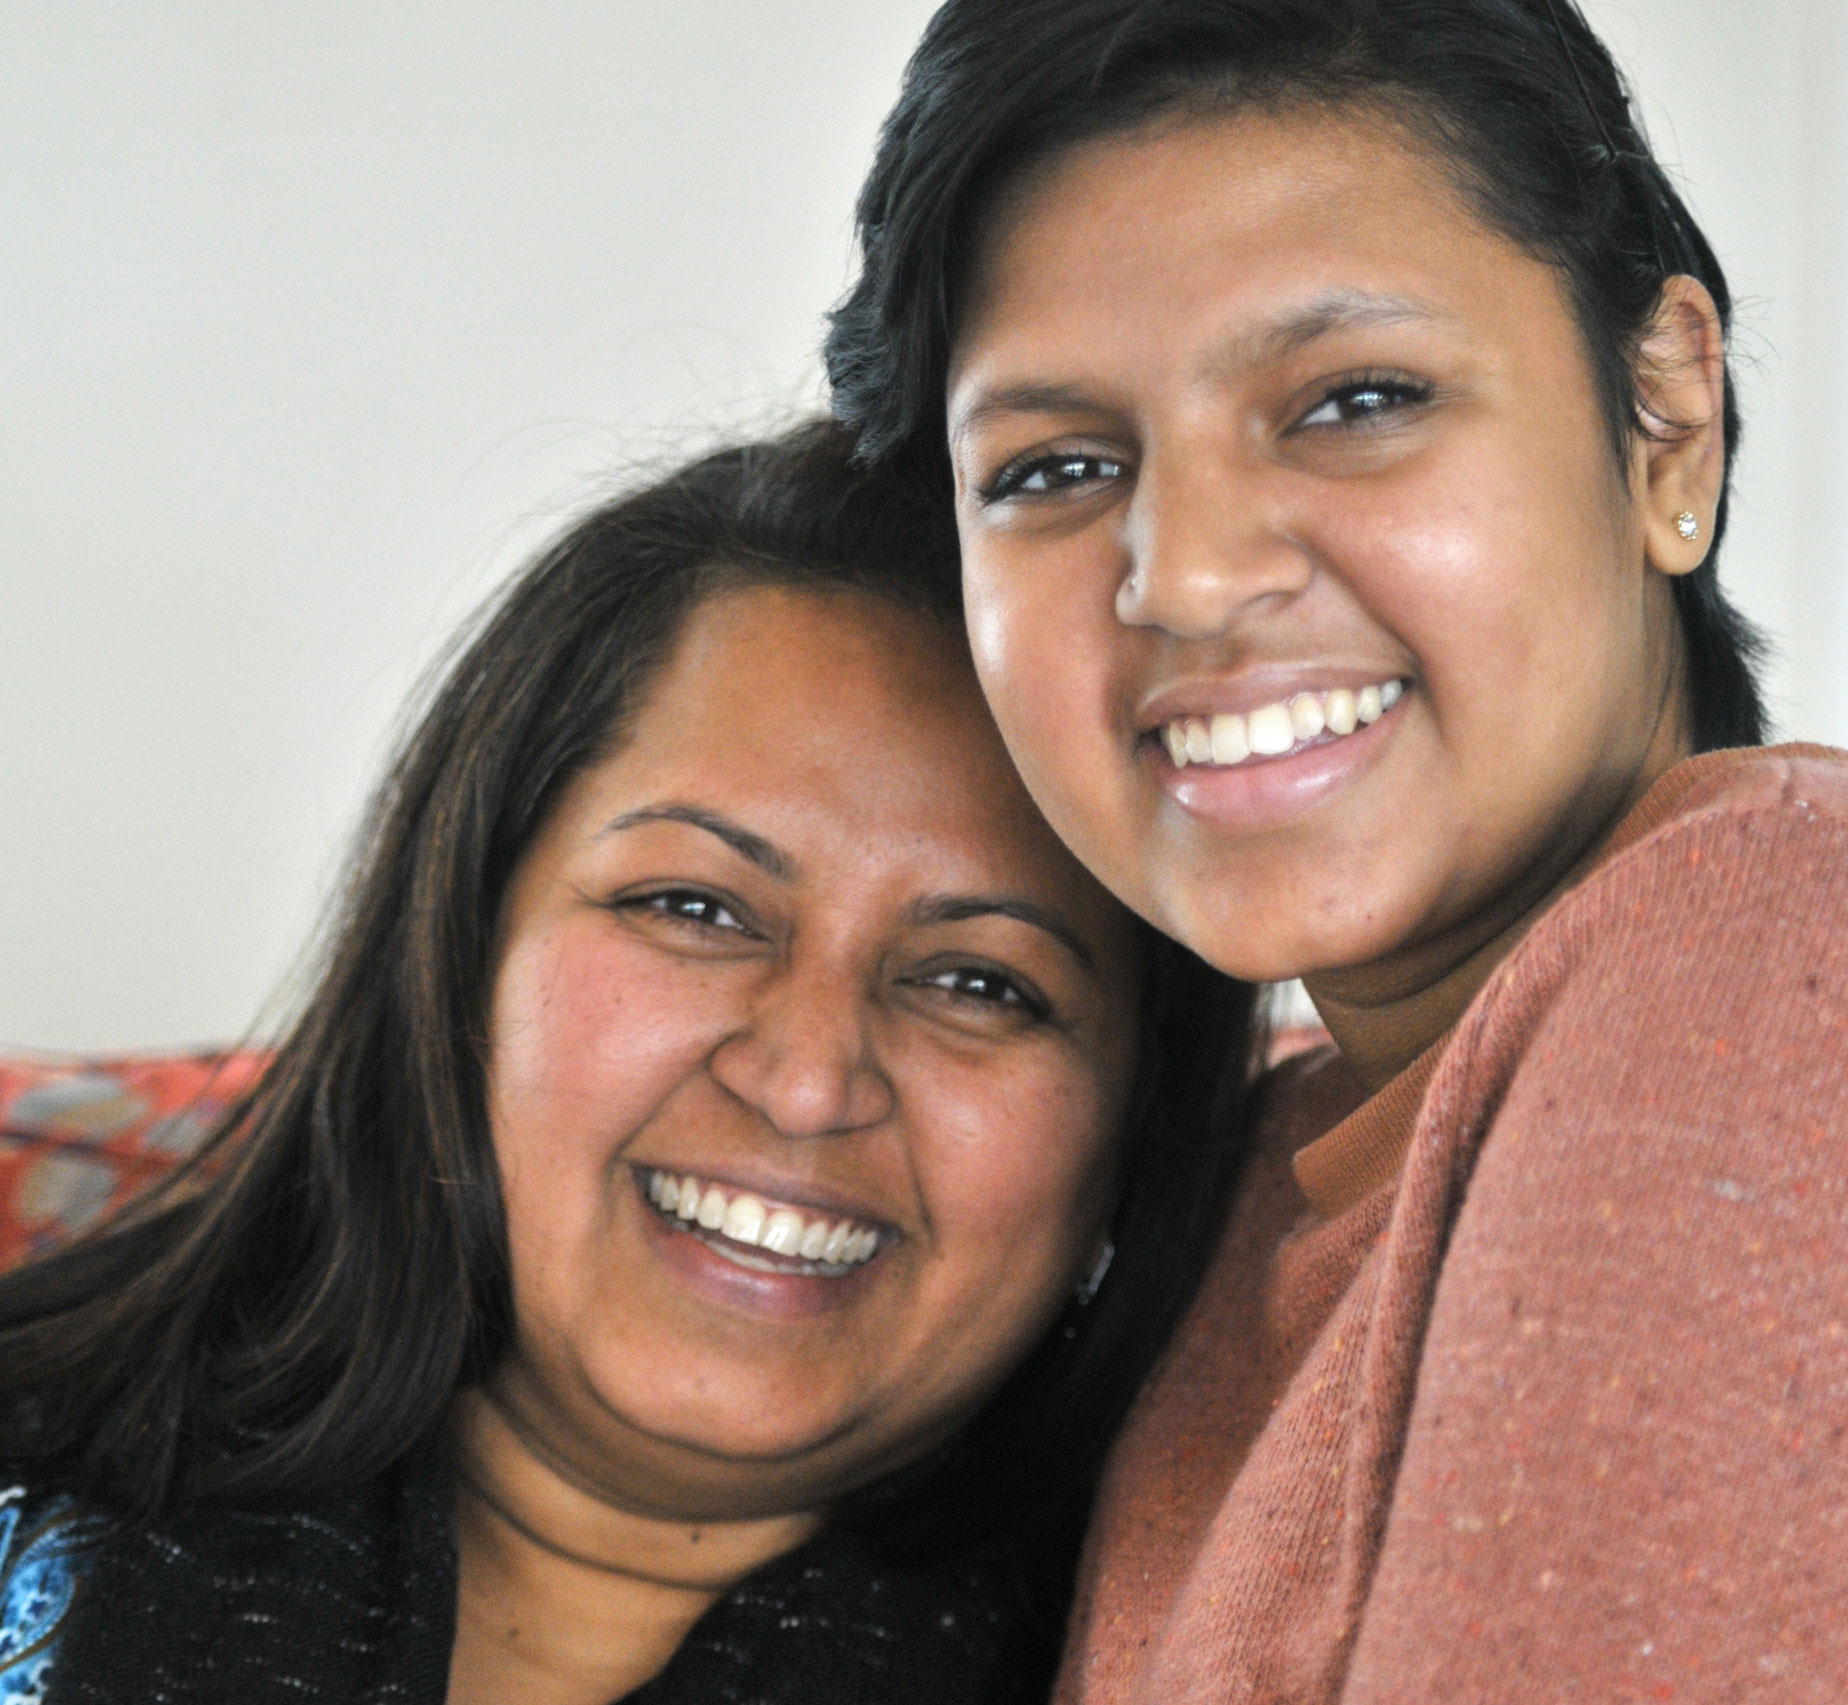 Kavya Nadella holding her mother and posing for a photo